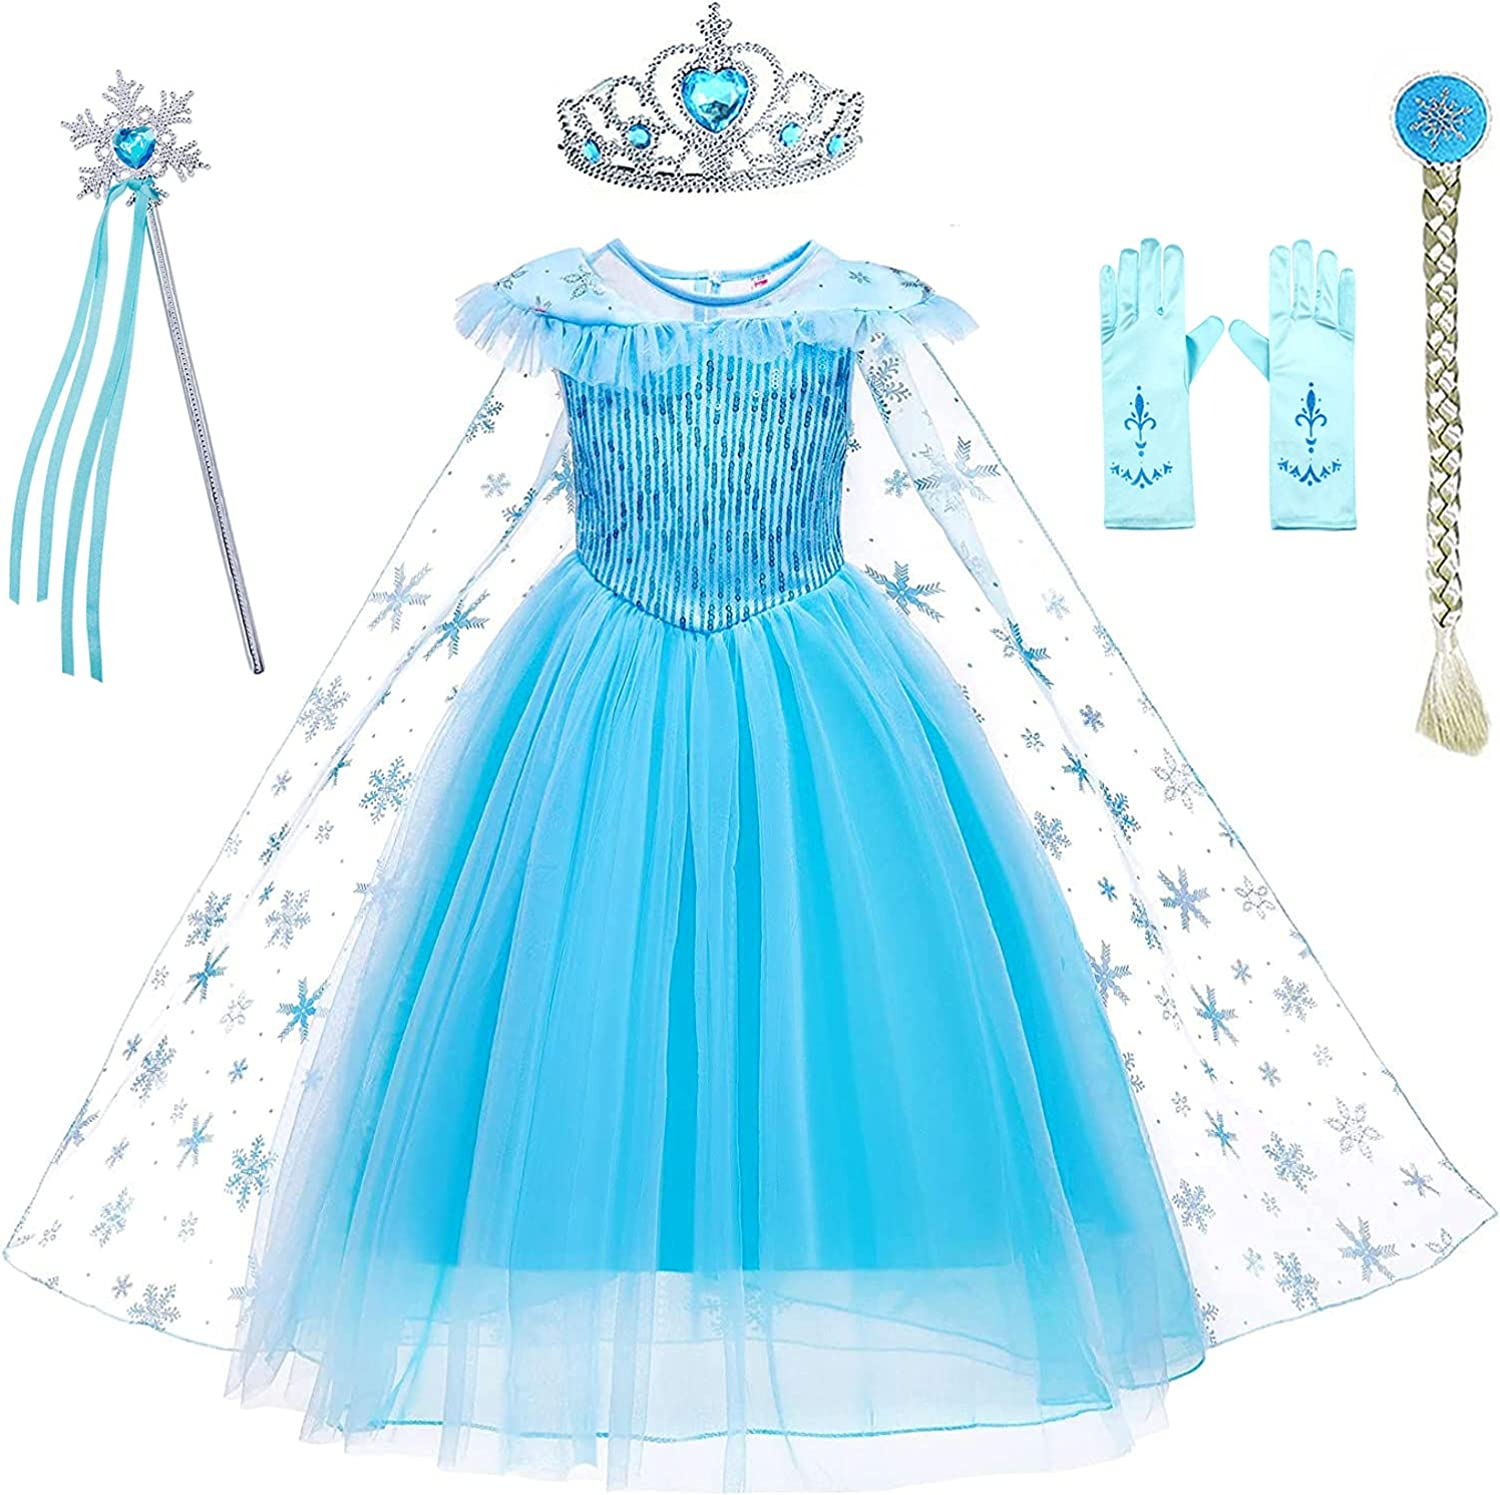 Avady Princess Costumes Birthday Dress Over item handling ☆ for Gir Up Clothes Houston Mall Little